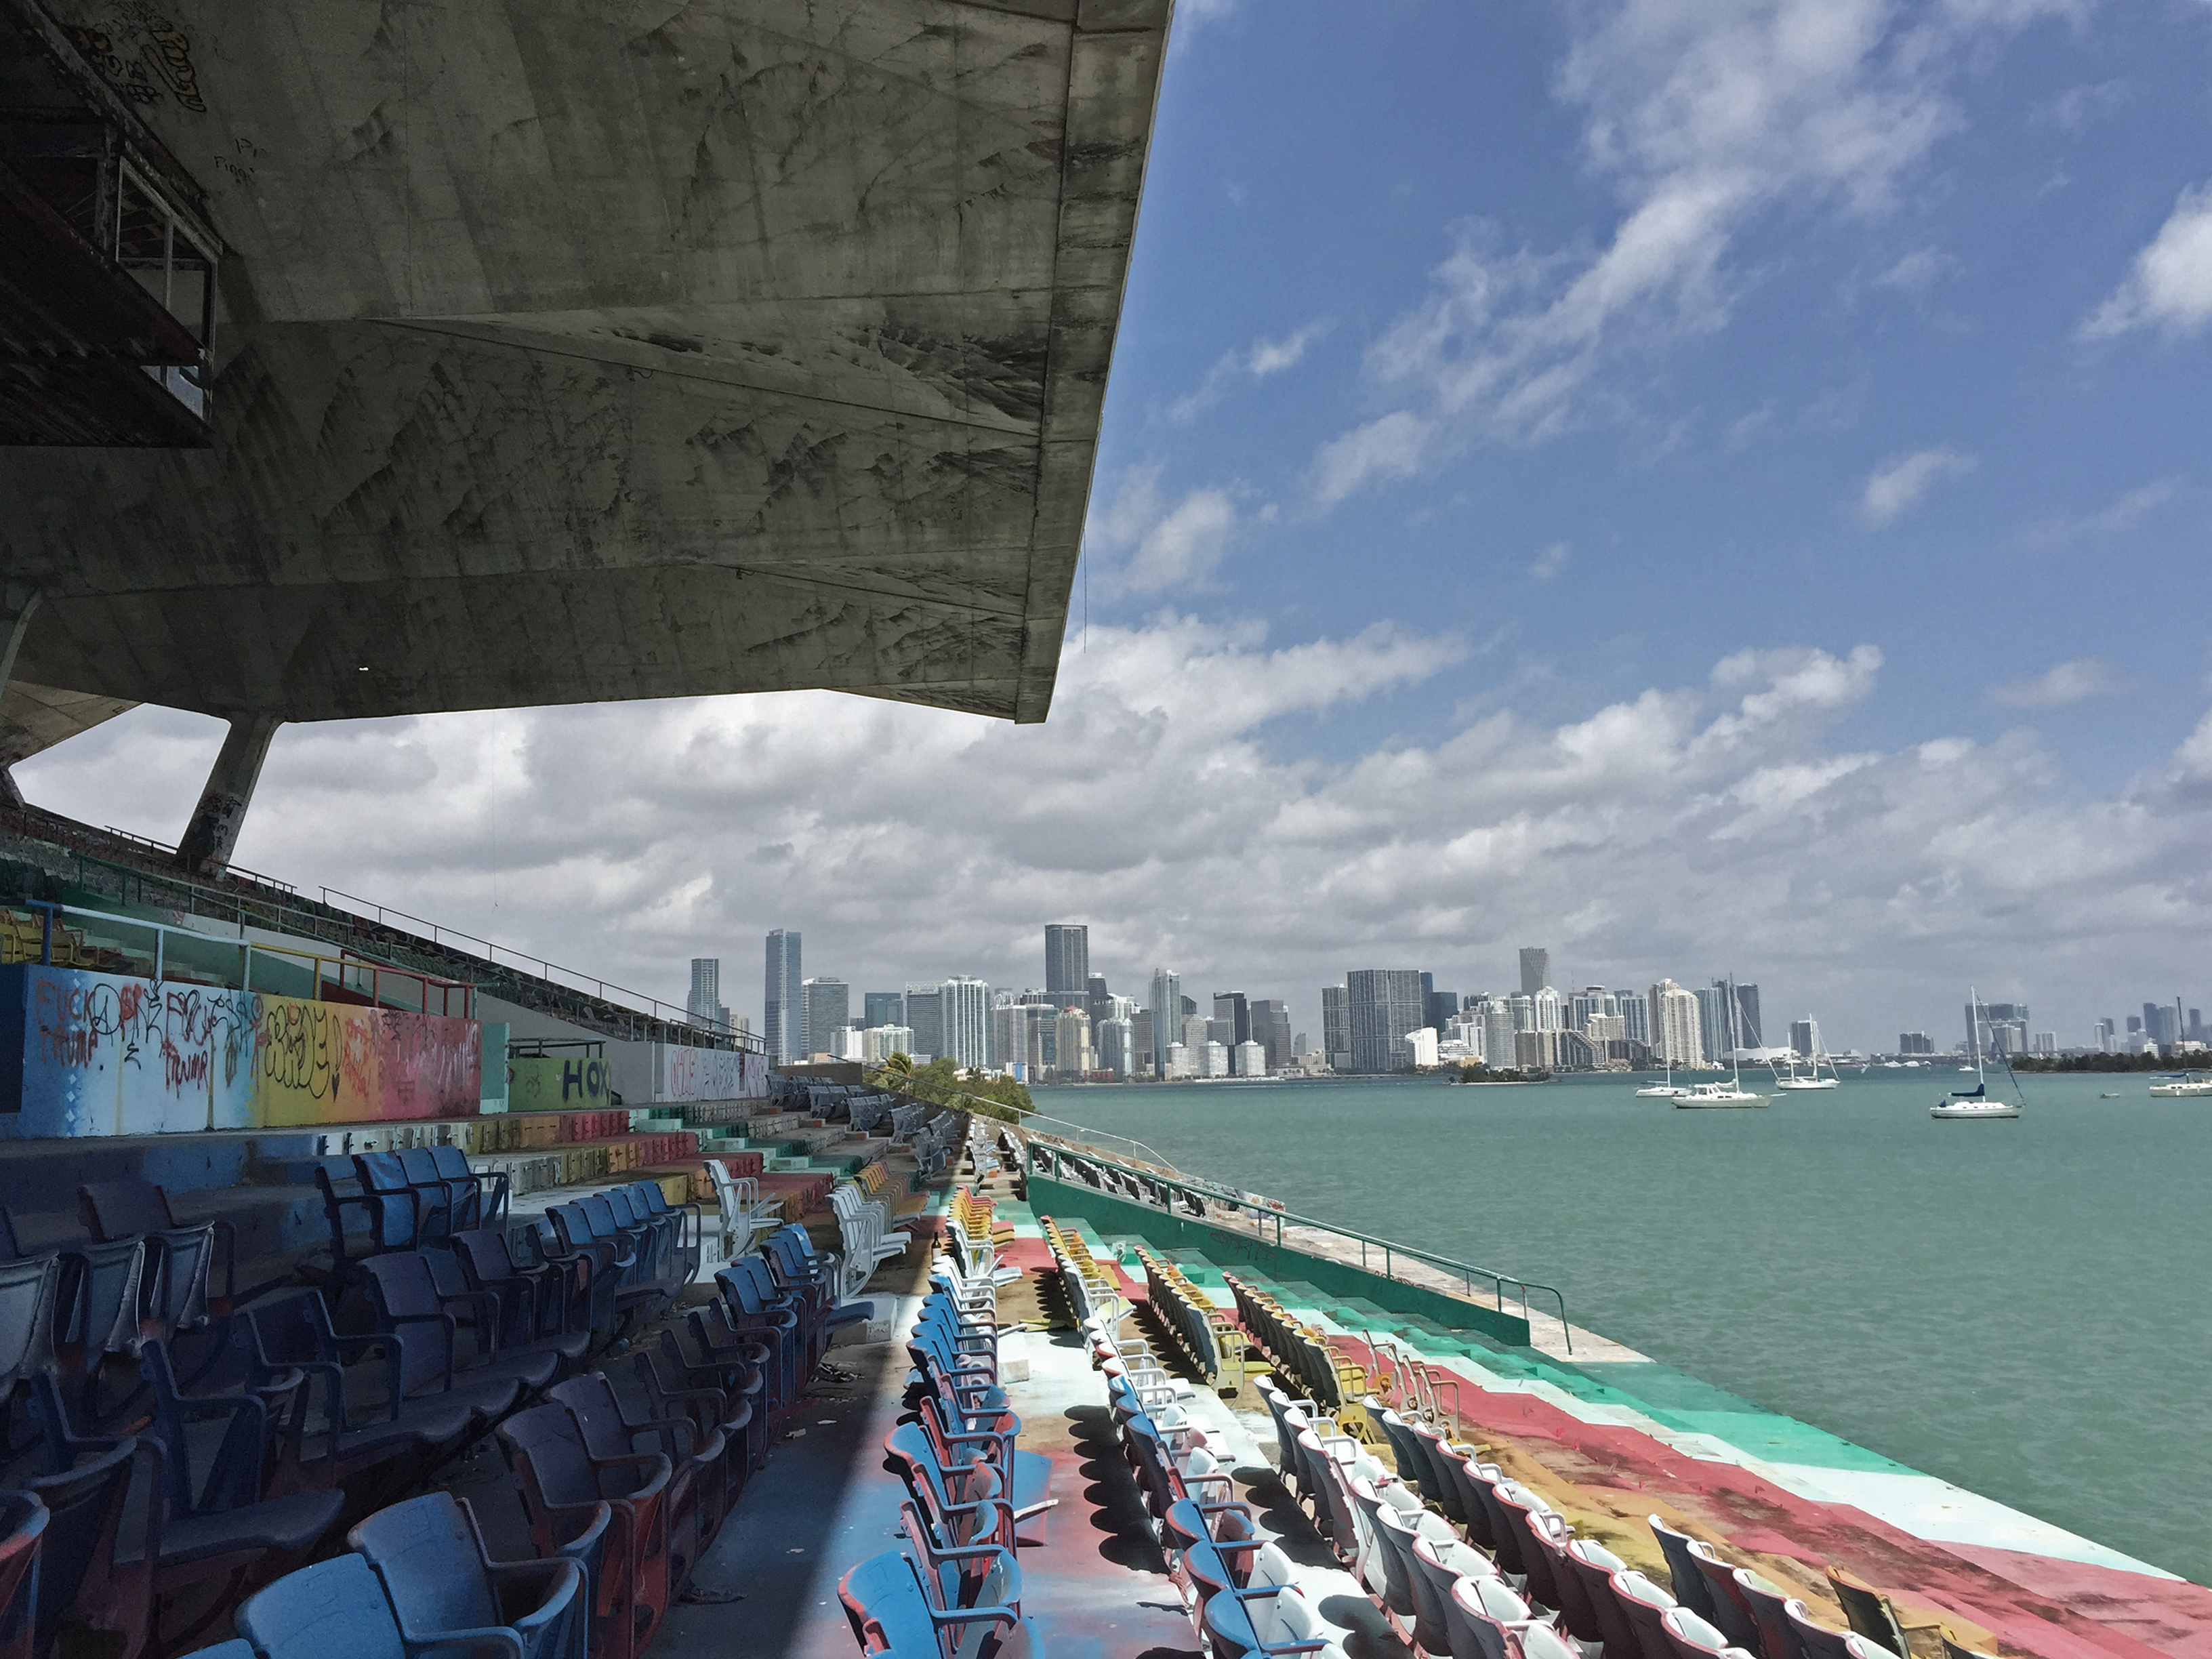 View from the grandstand towards Miami, and the cantilevered roof shown above.